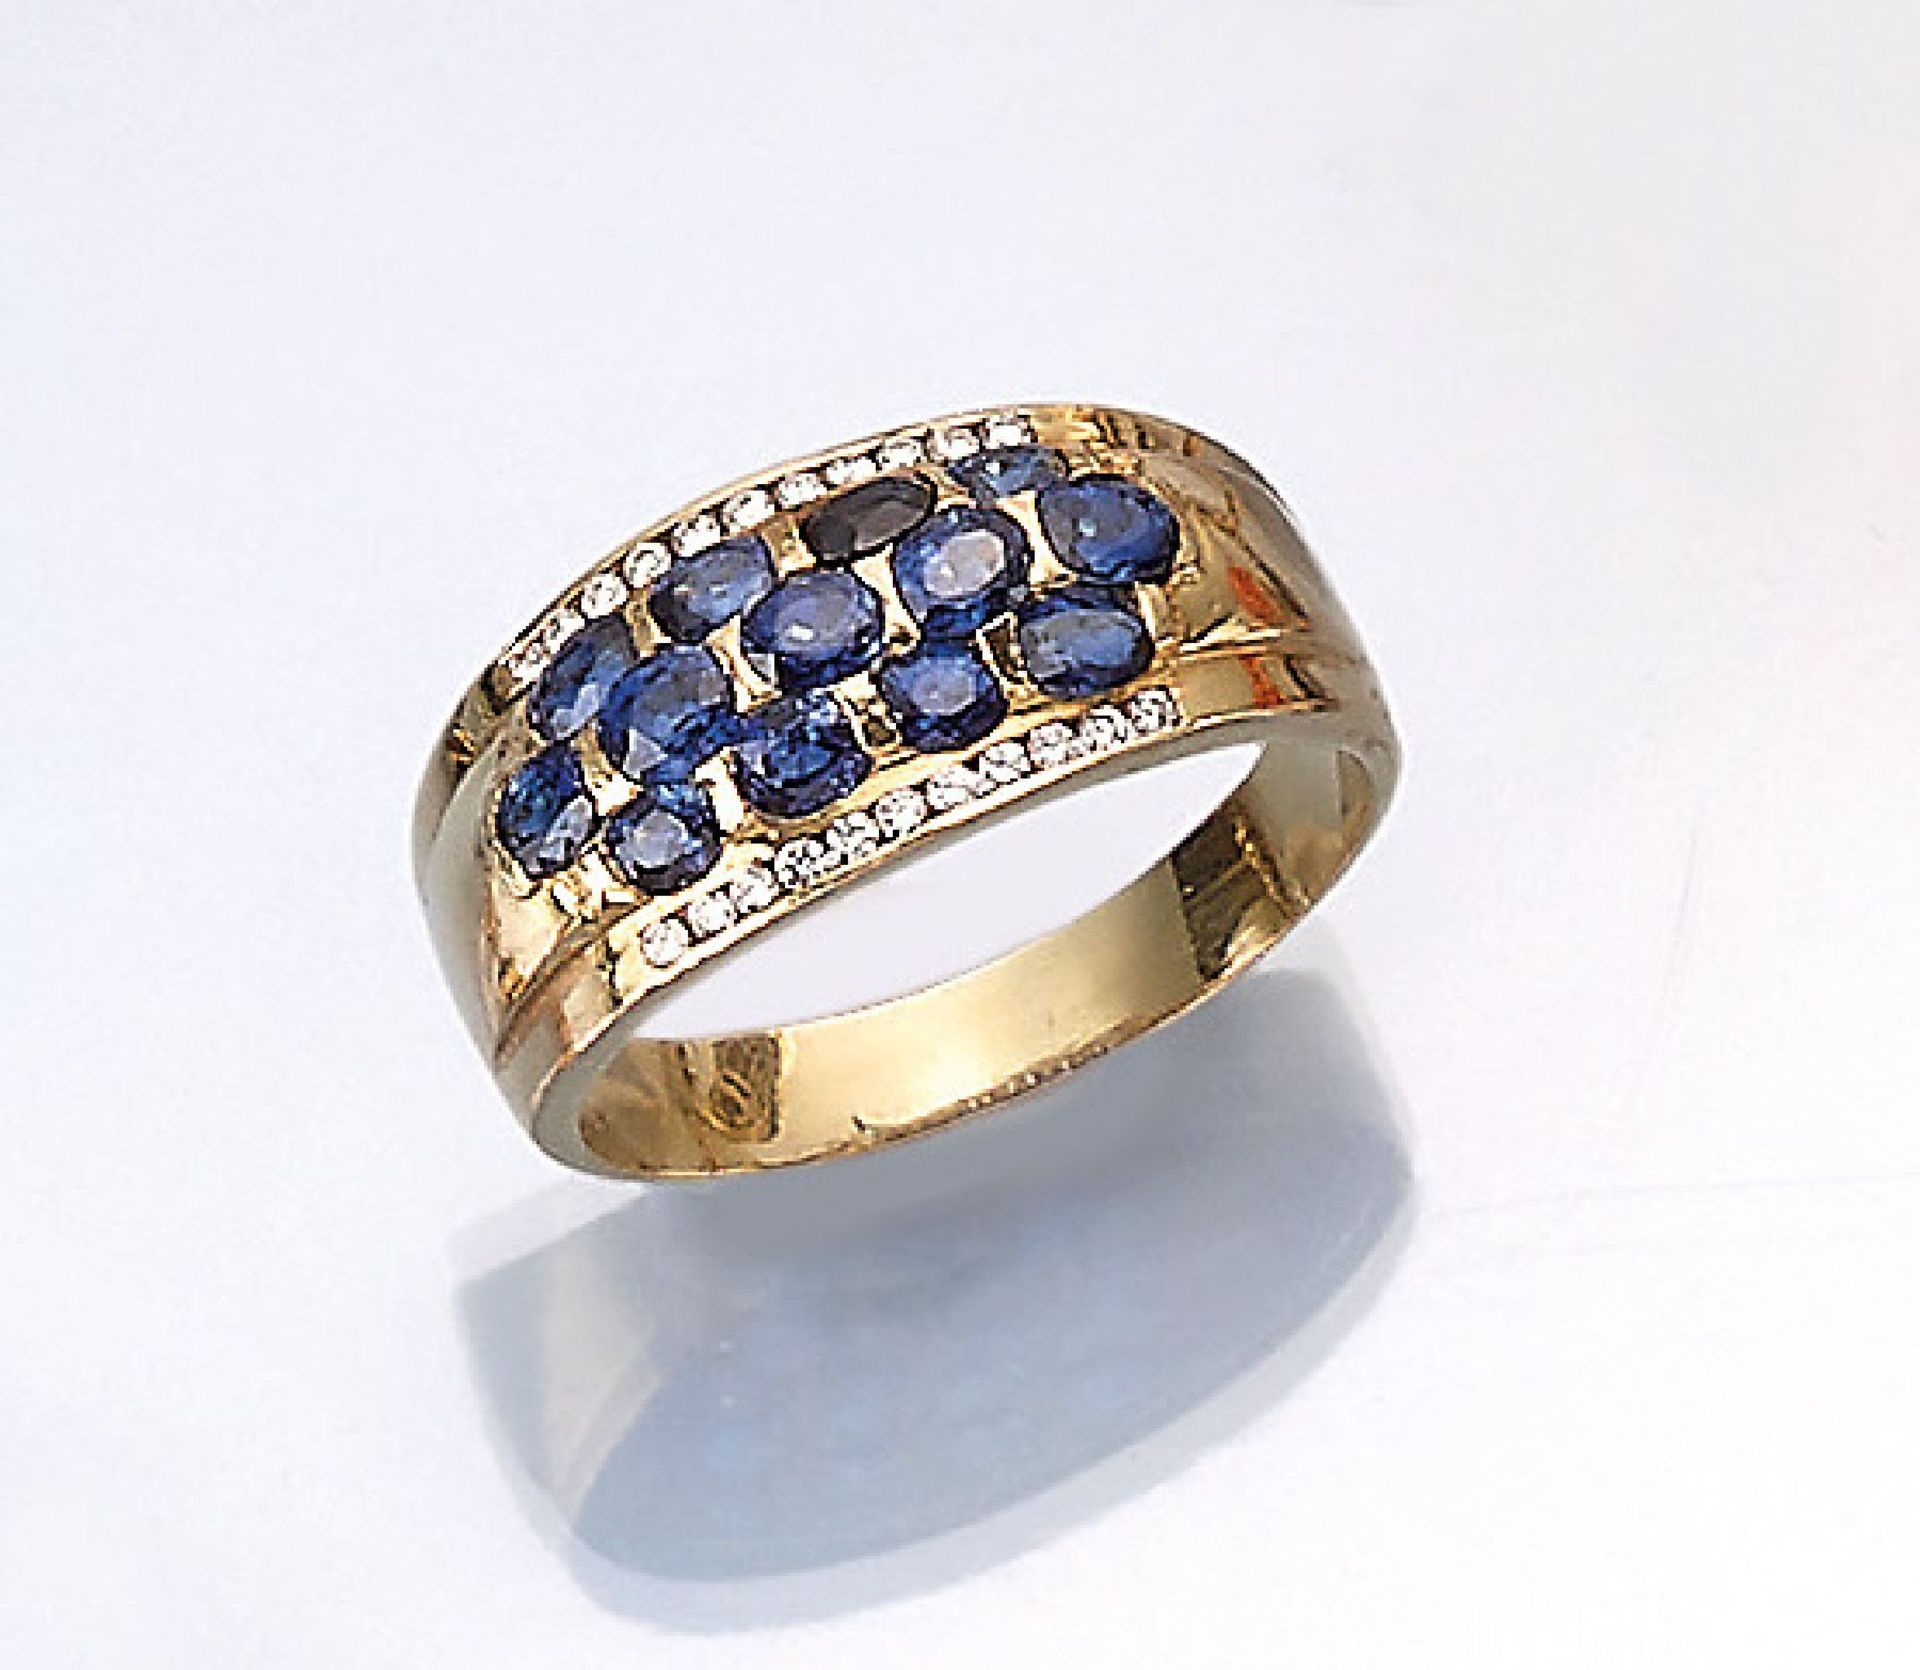 Los 61504 - 14 kt gold ring with sapphires and brilliants , YG 585/000, oval bevelled sapphires total approx.